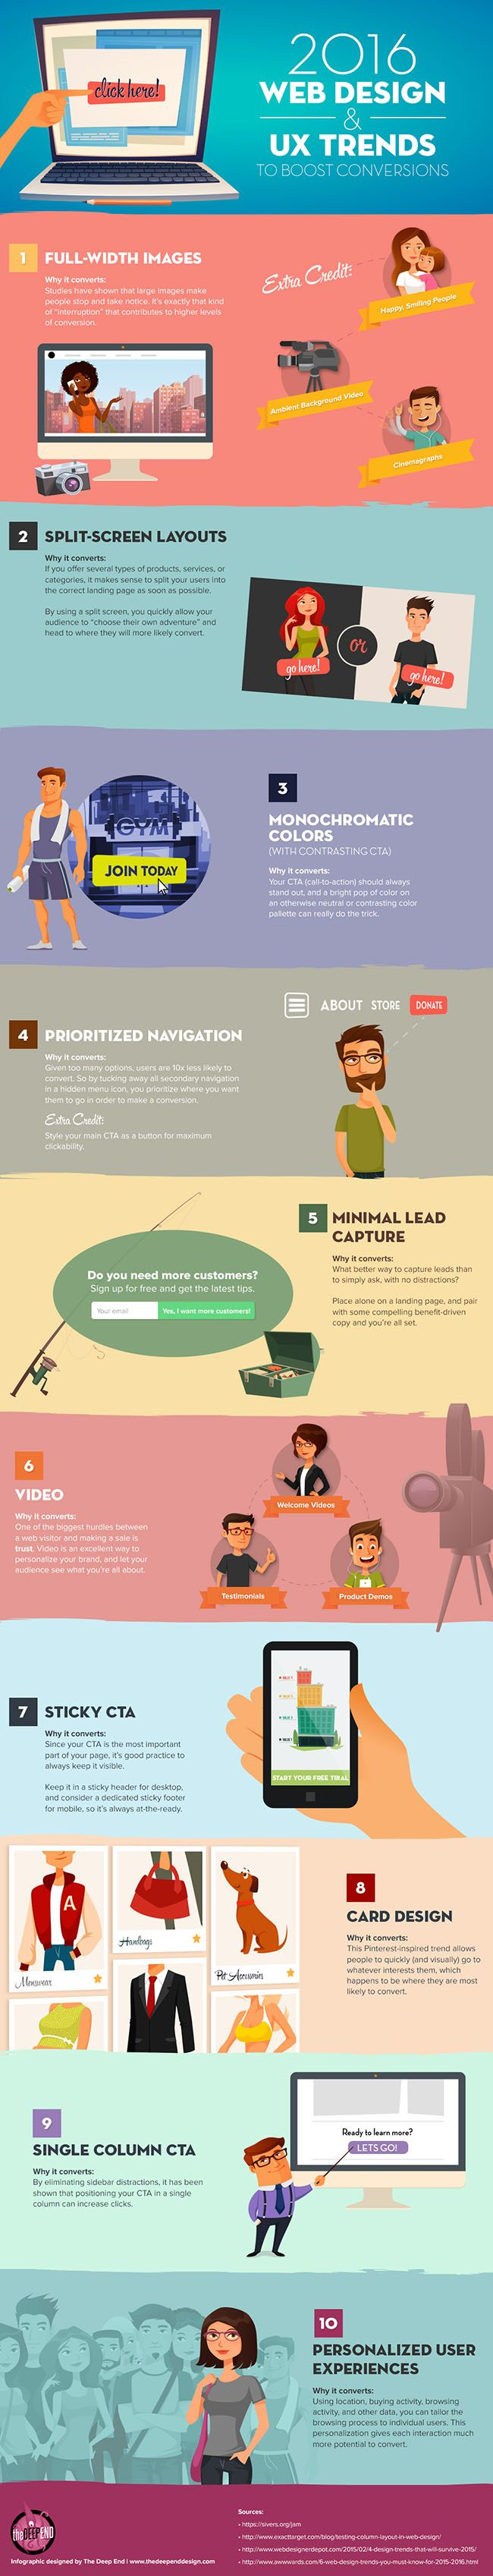 Design and UX Trends to Boost Conversions [INFOGRAPHIC]